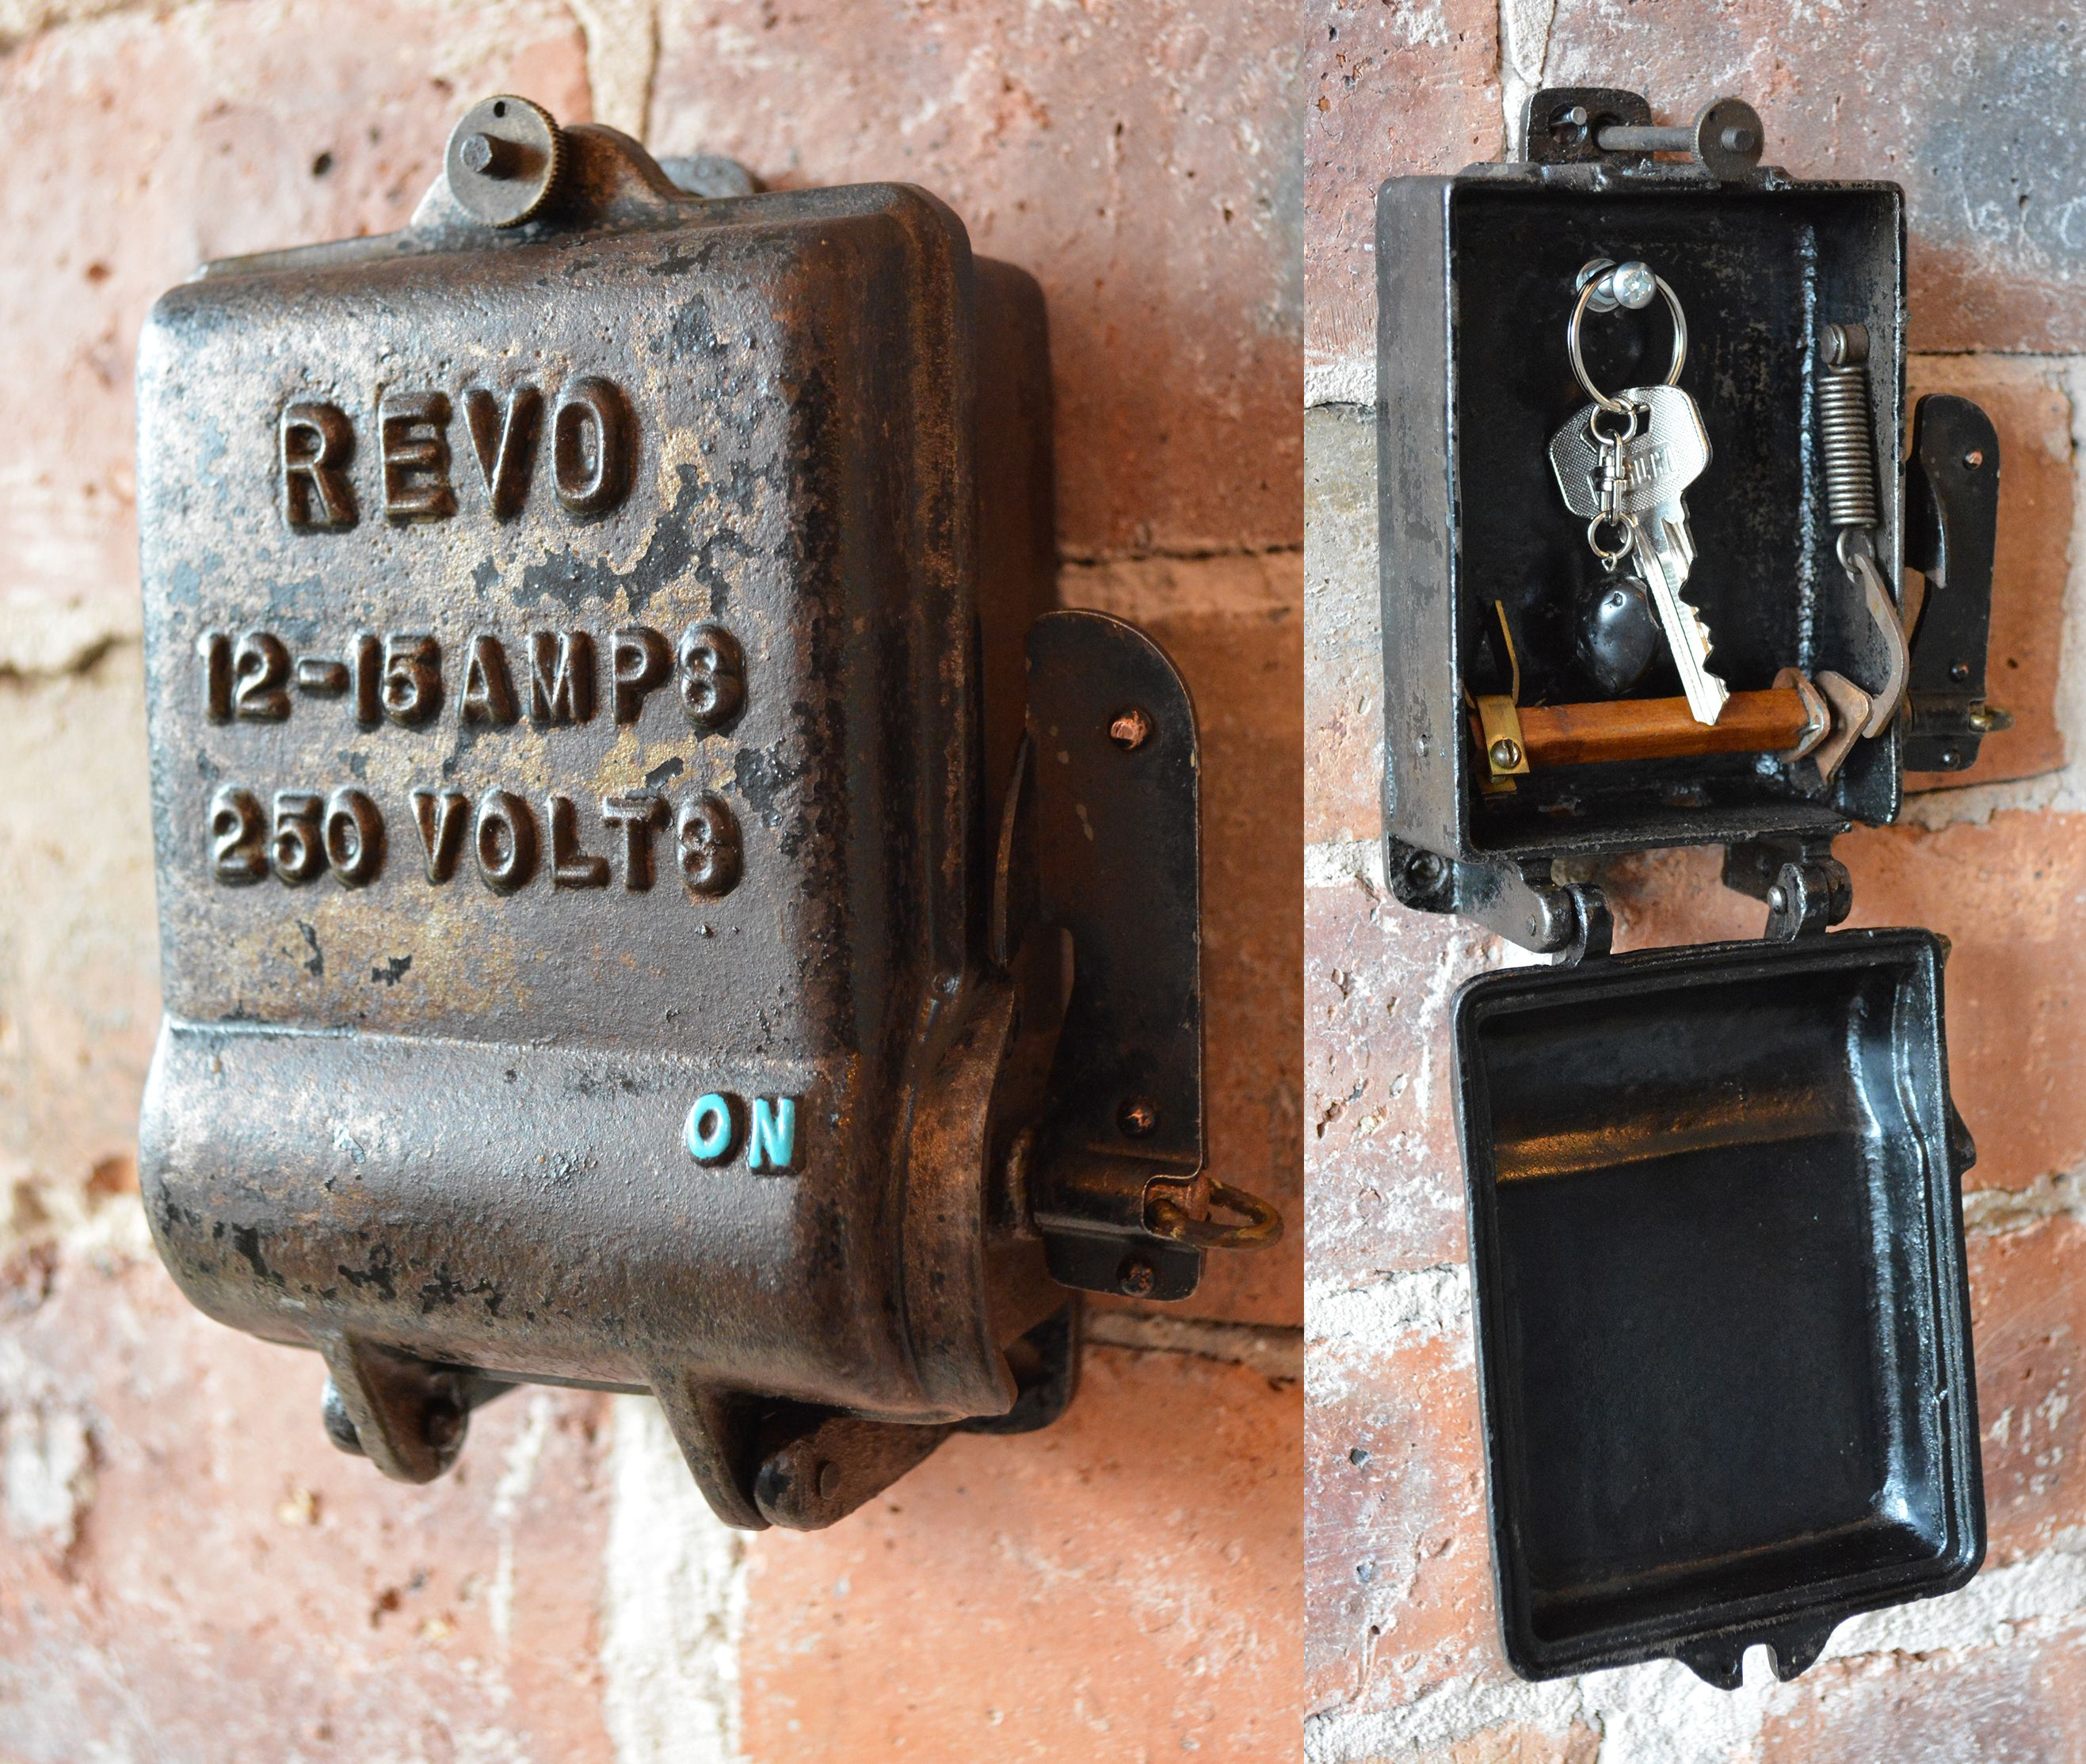 ddebd9ff65210514eb0d60b0b47283cd cast iron key storage converted from an antique 1940's revo fuse Motorcycle Auxiliary Fuse Panel at honlapkeszites.co